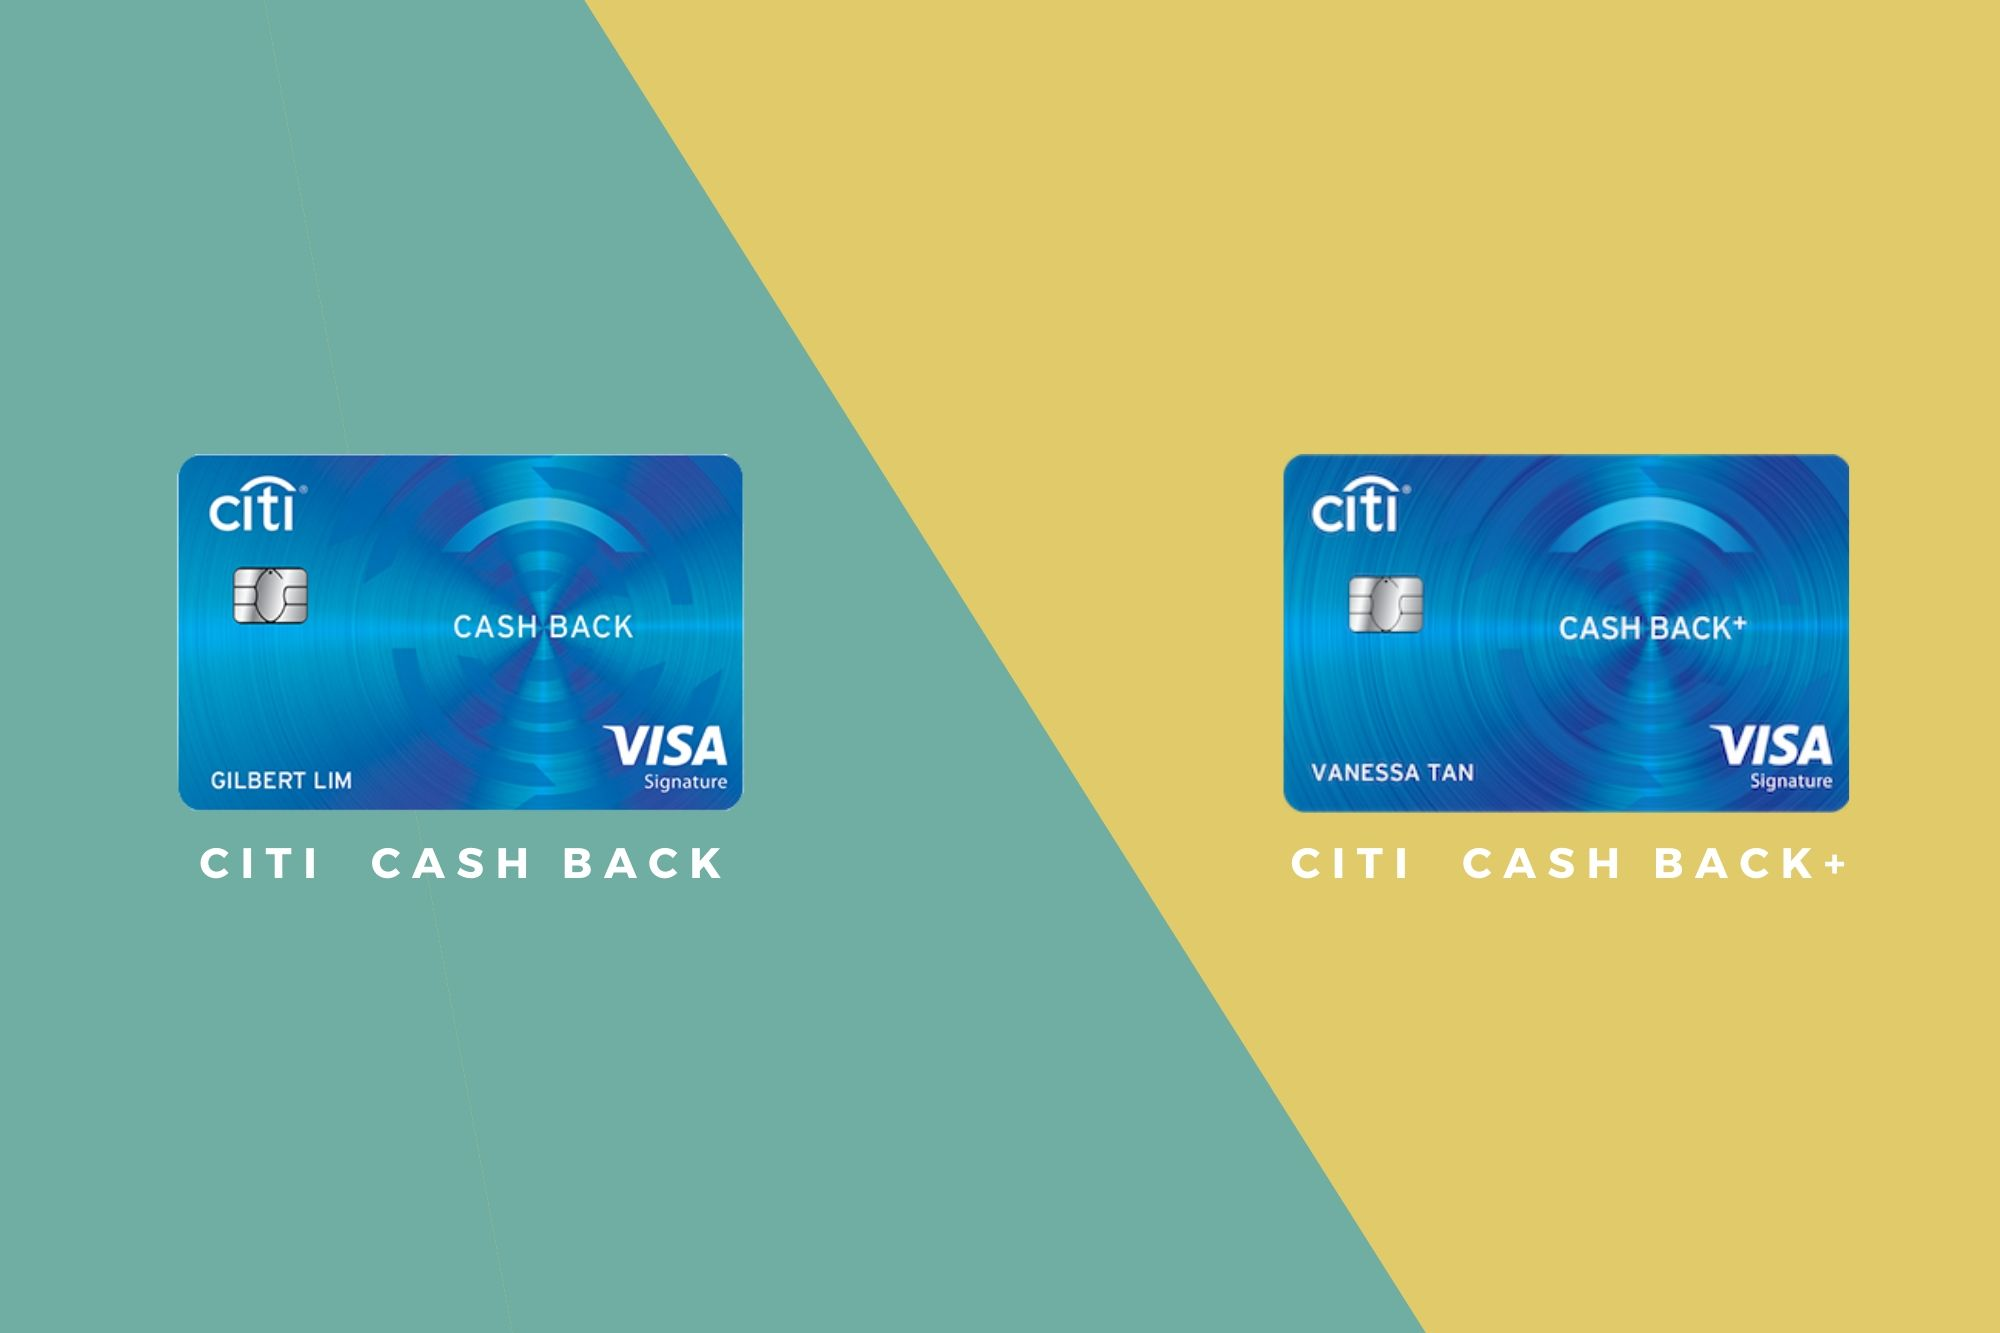 Citi Cash Back VS Citi Cash Back Plus Card: Differences Between